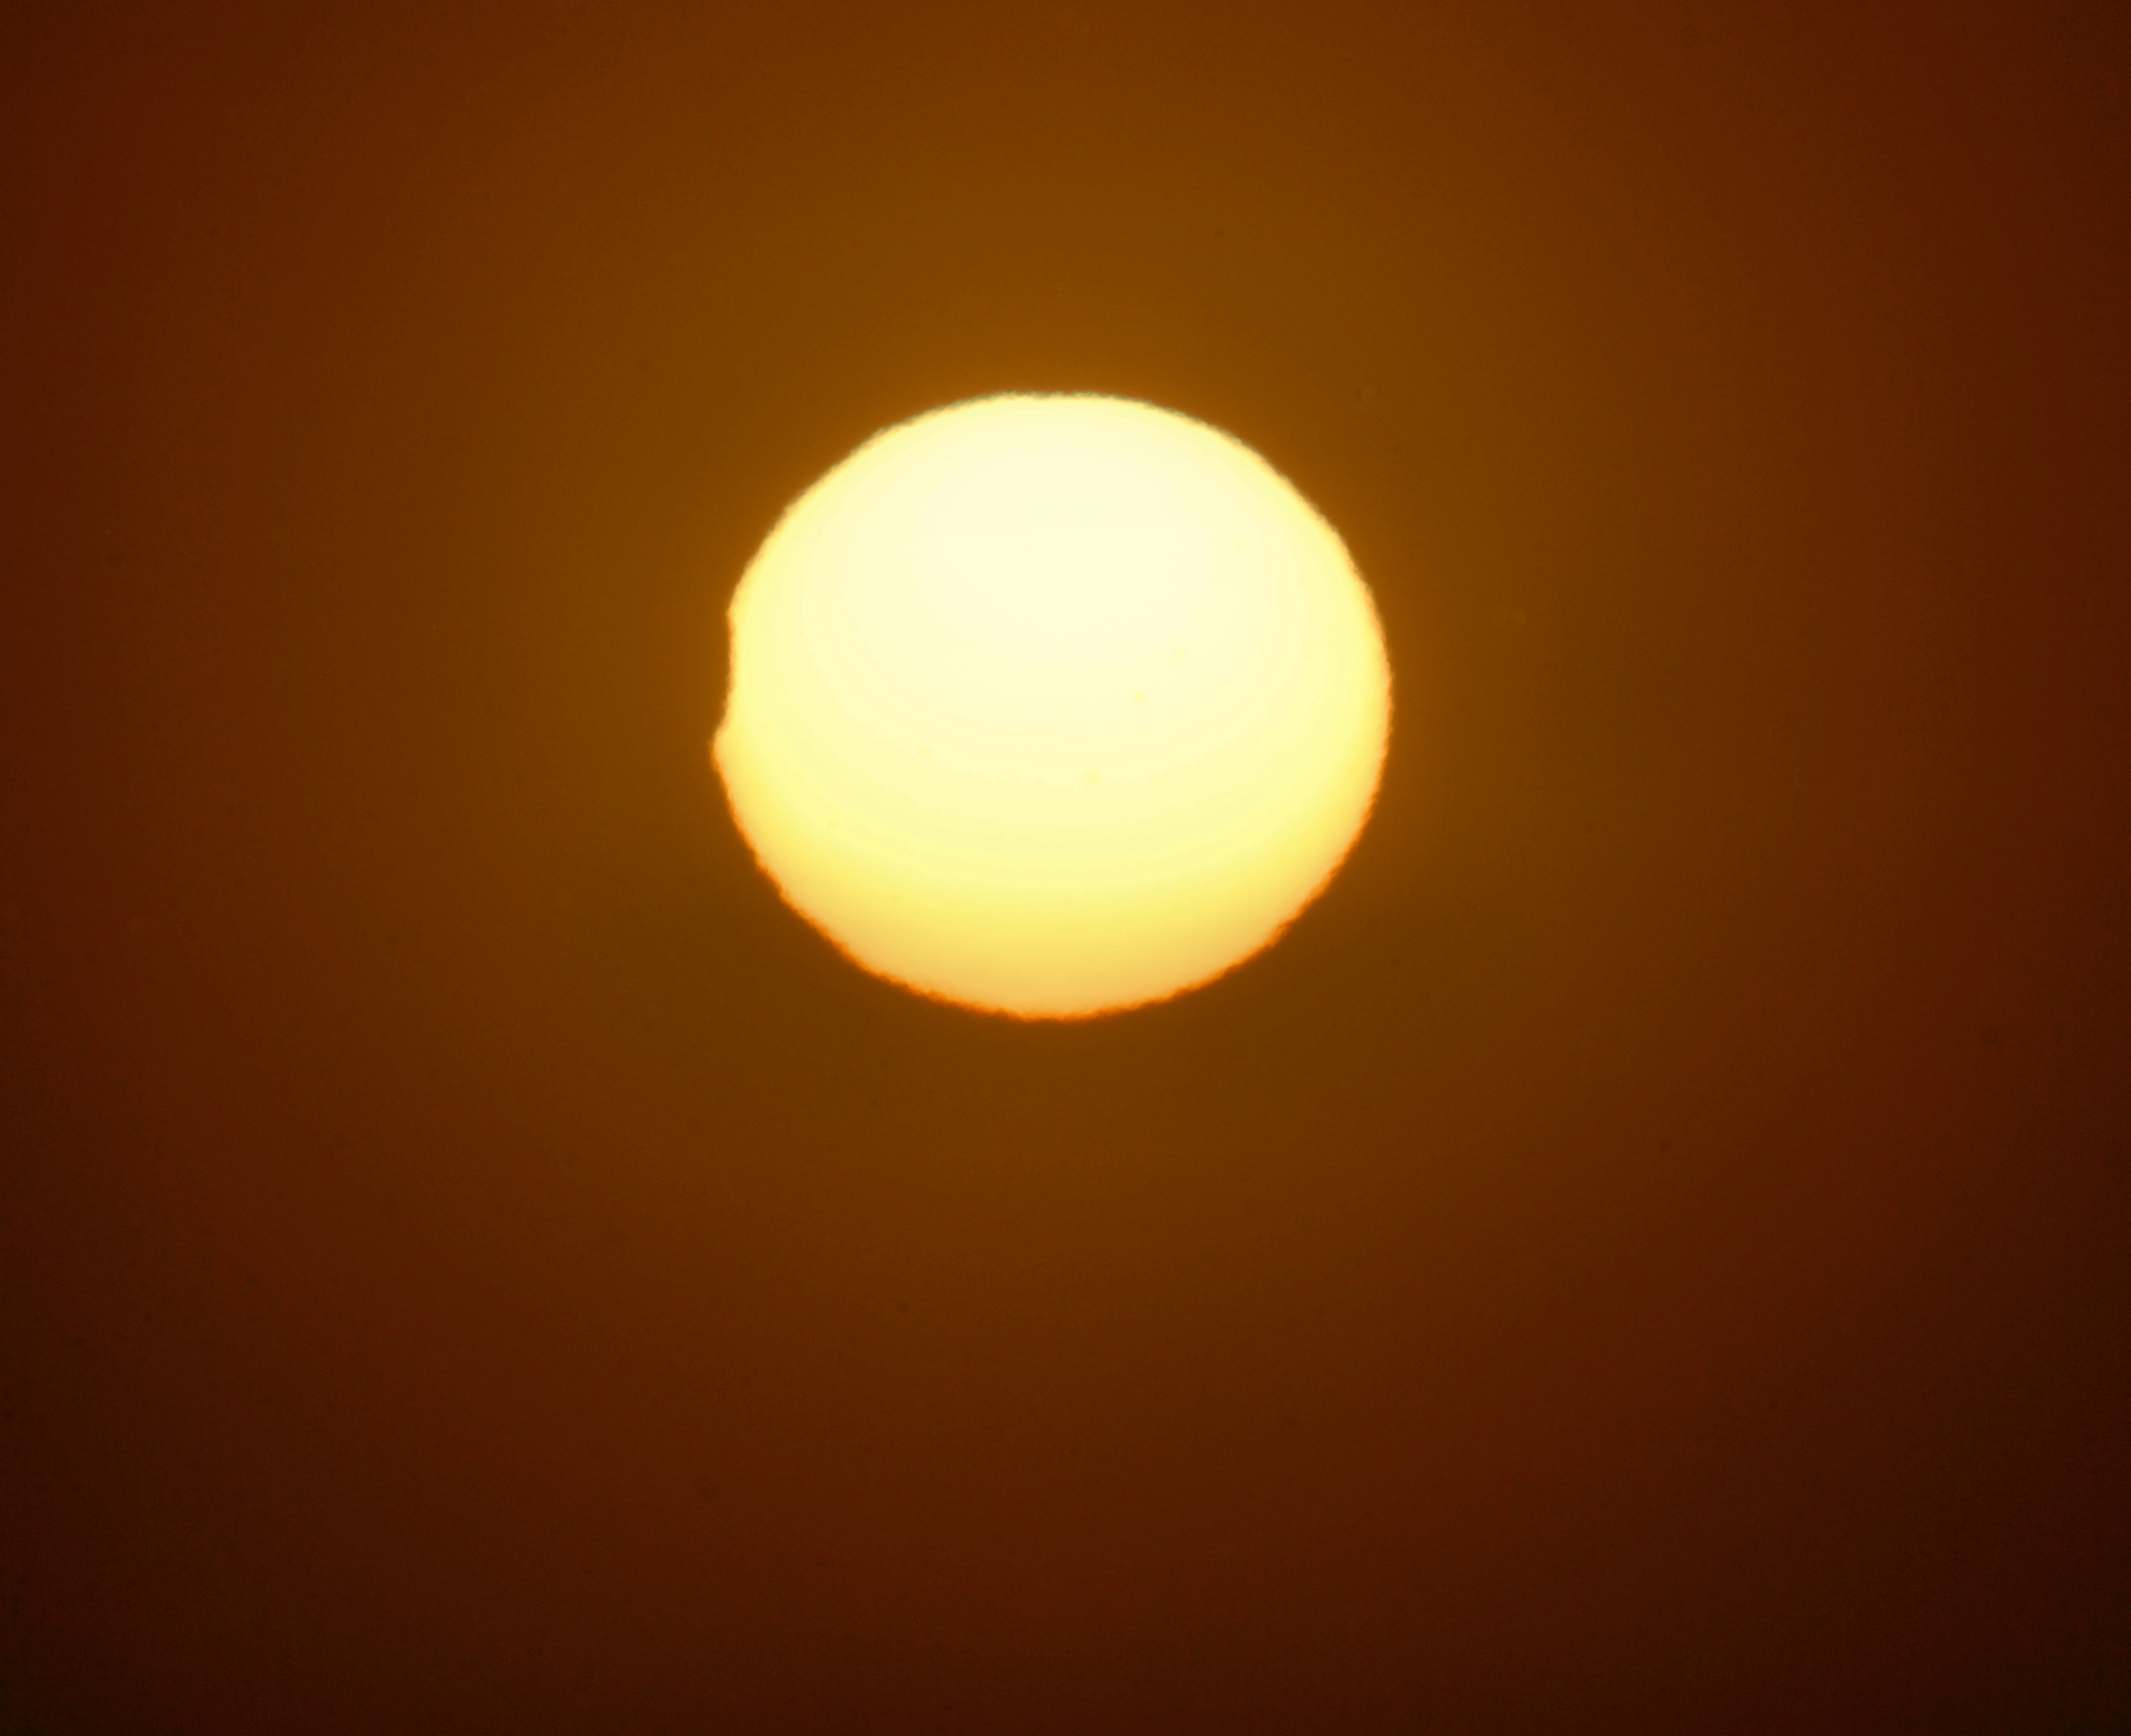 Partial Solar Eclipse - Nov. 25, 2011